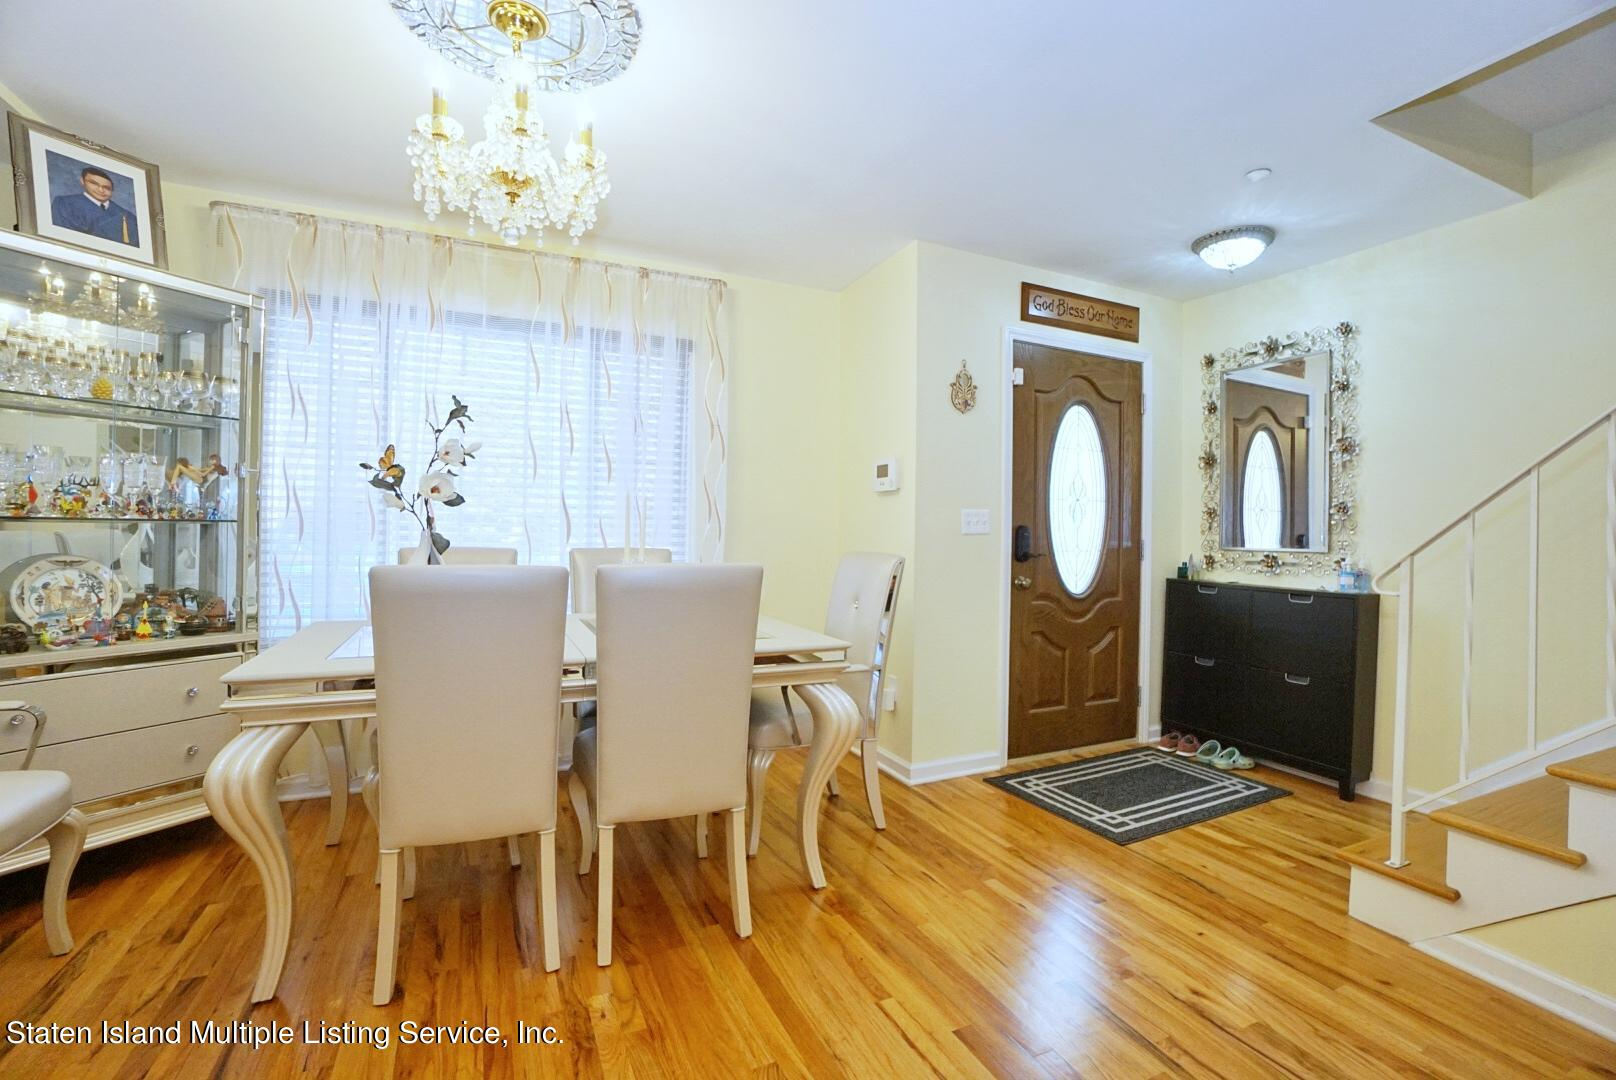 Single Family - Detached 171 Benziger Avenue  Staten Island, NY 10301, MLS-1145235-8